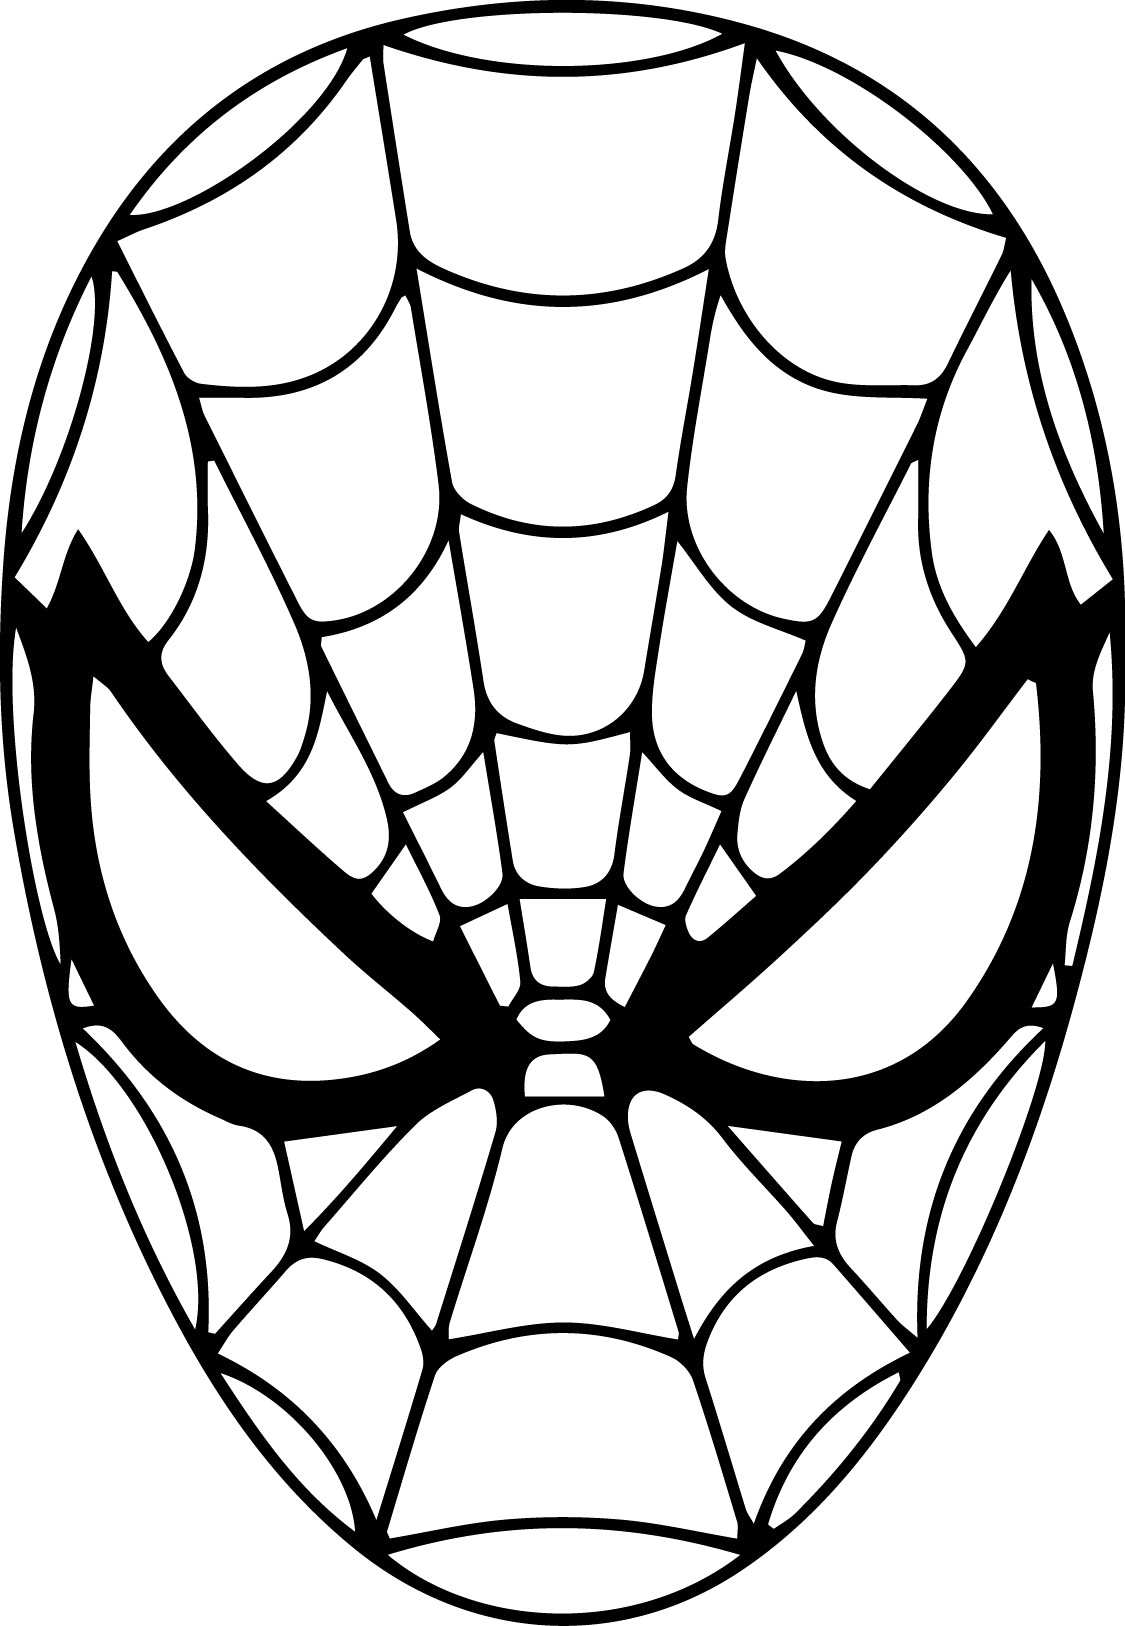 spiderman mask coloring spiderman mask coloring page at getdrawings free download mask coloring spiderman